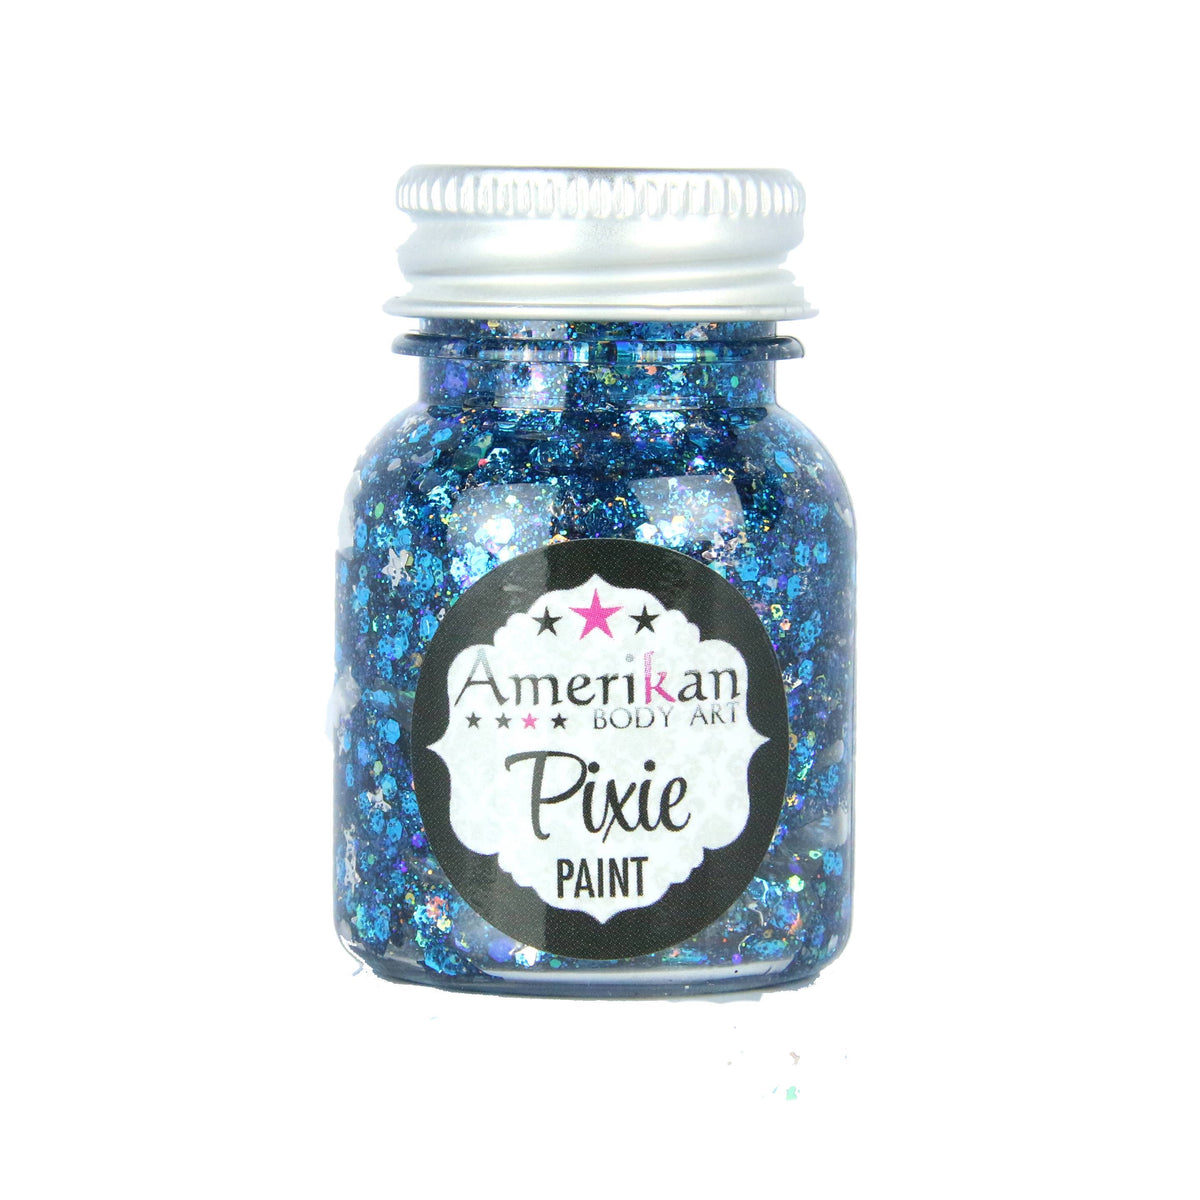 Amerikan Body Art Pixie Paint Glitter Gel - Midnight Blue (1 oz)